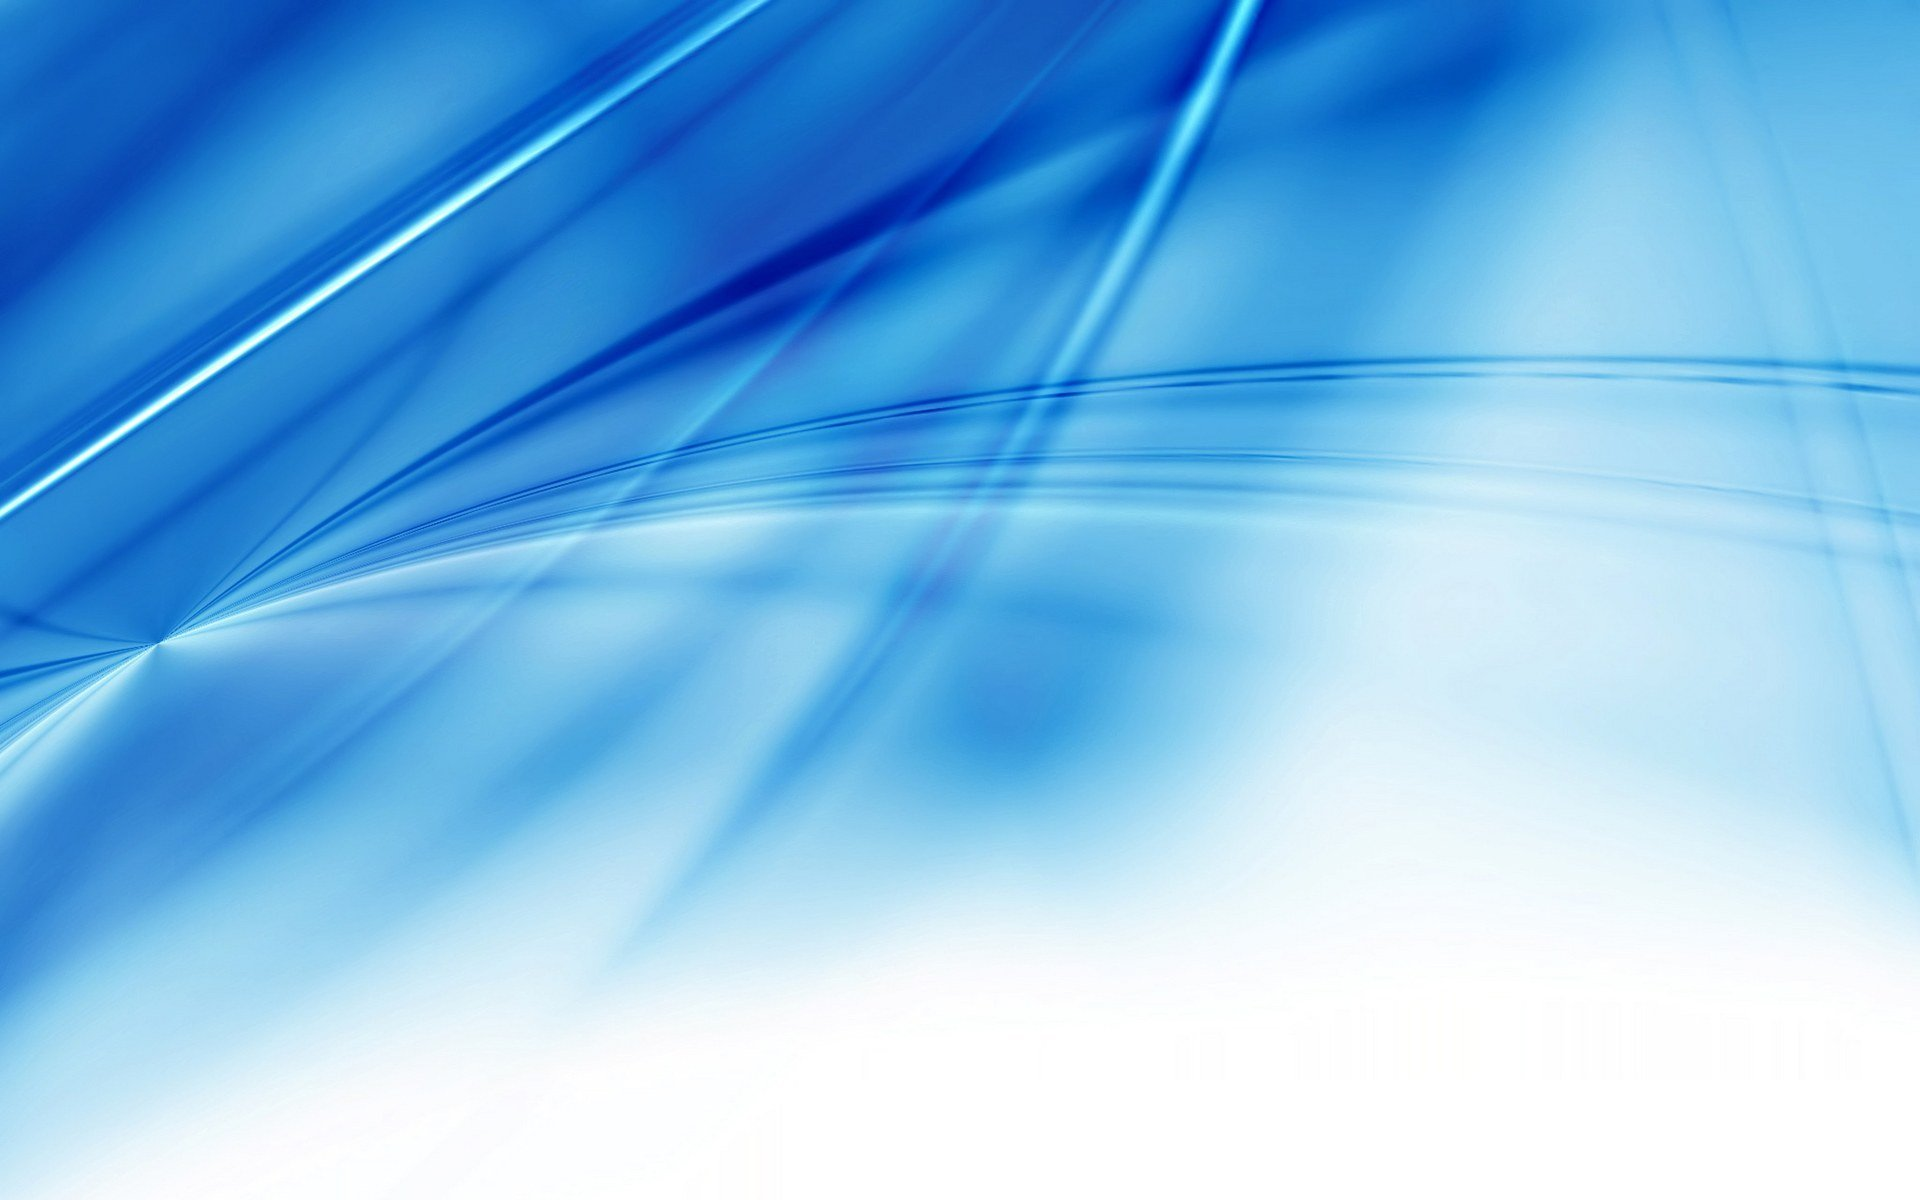 Blue Abstract Background 3158 Hd Wallpapers in Abstract - Imagesci.com